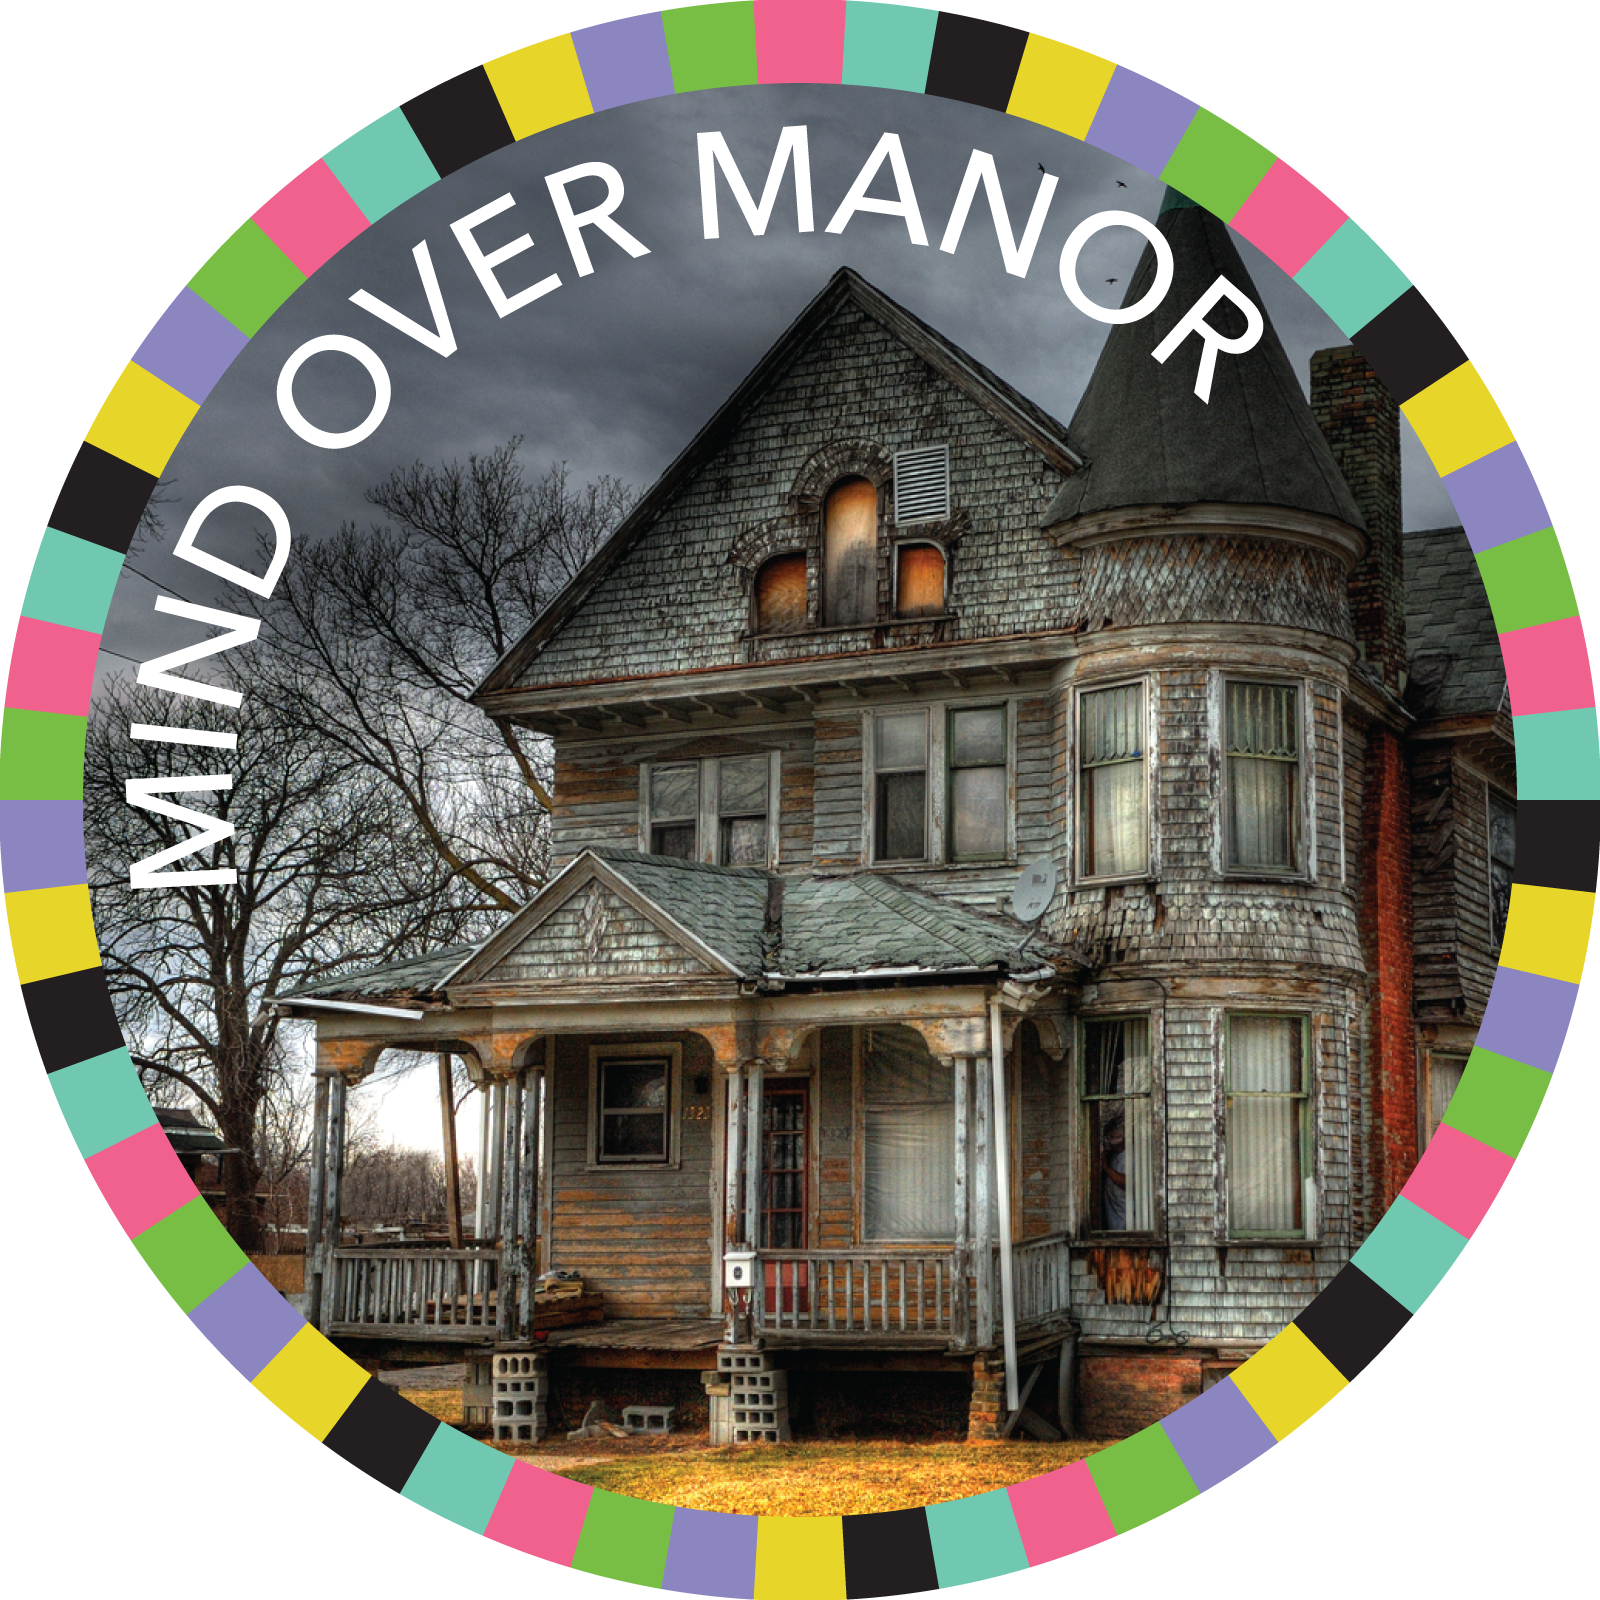 Mind Over Manor badge image